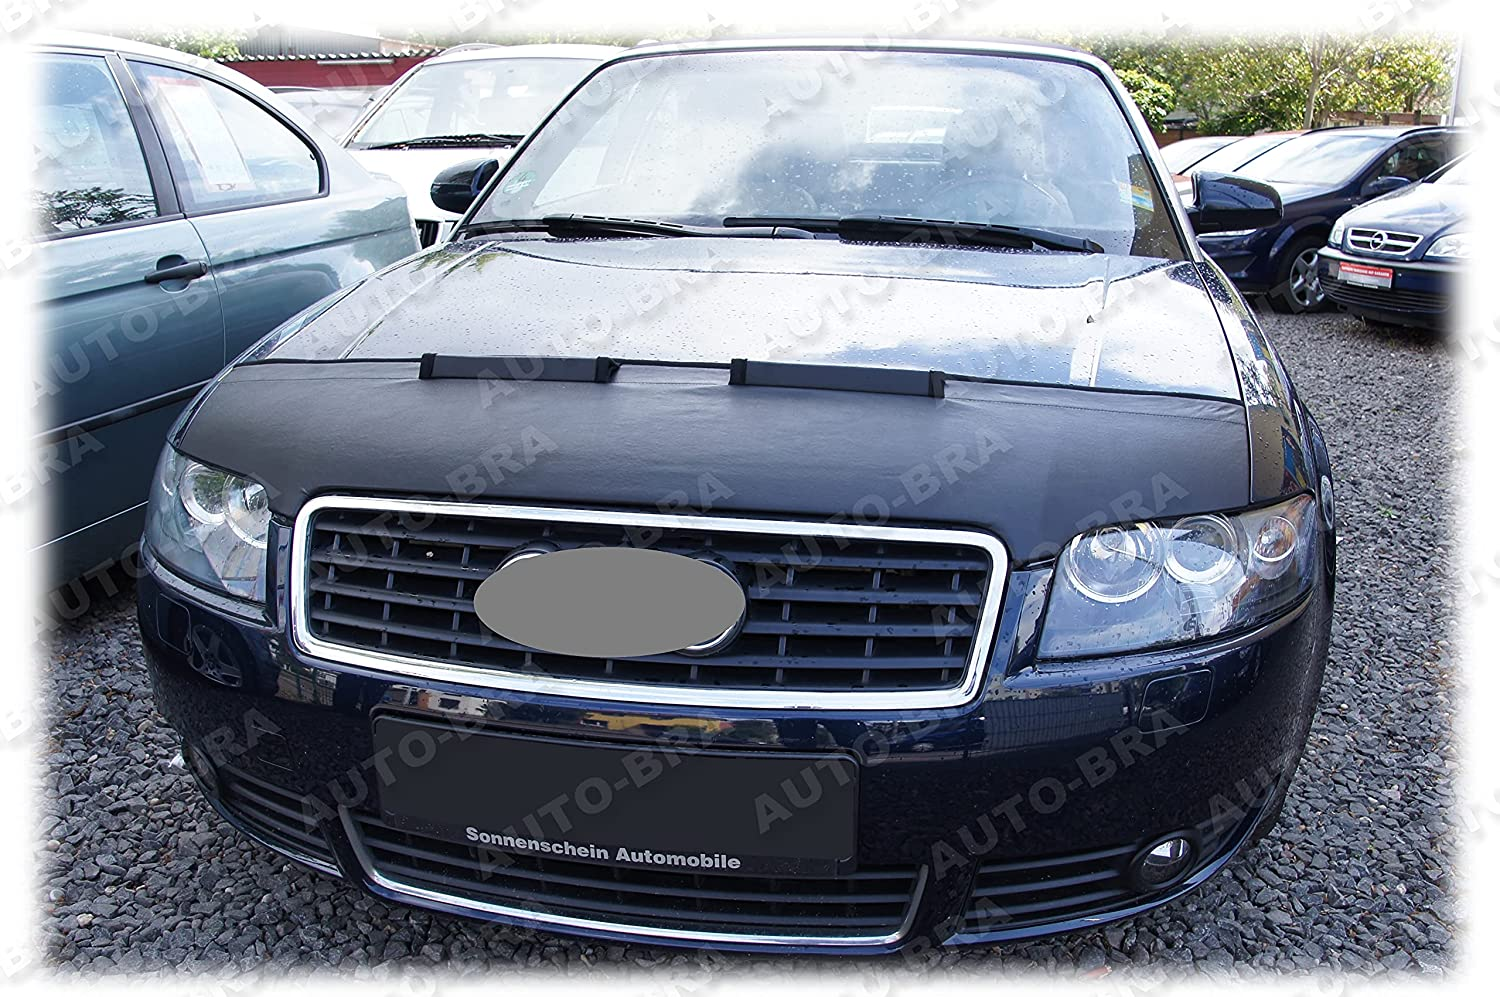 HOOD BRA Discount is ! Super beauty product restock quality top! also underway Front End Nose Mask Audi A4 Convertible for Cabriolet 2